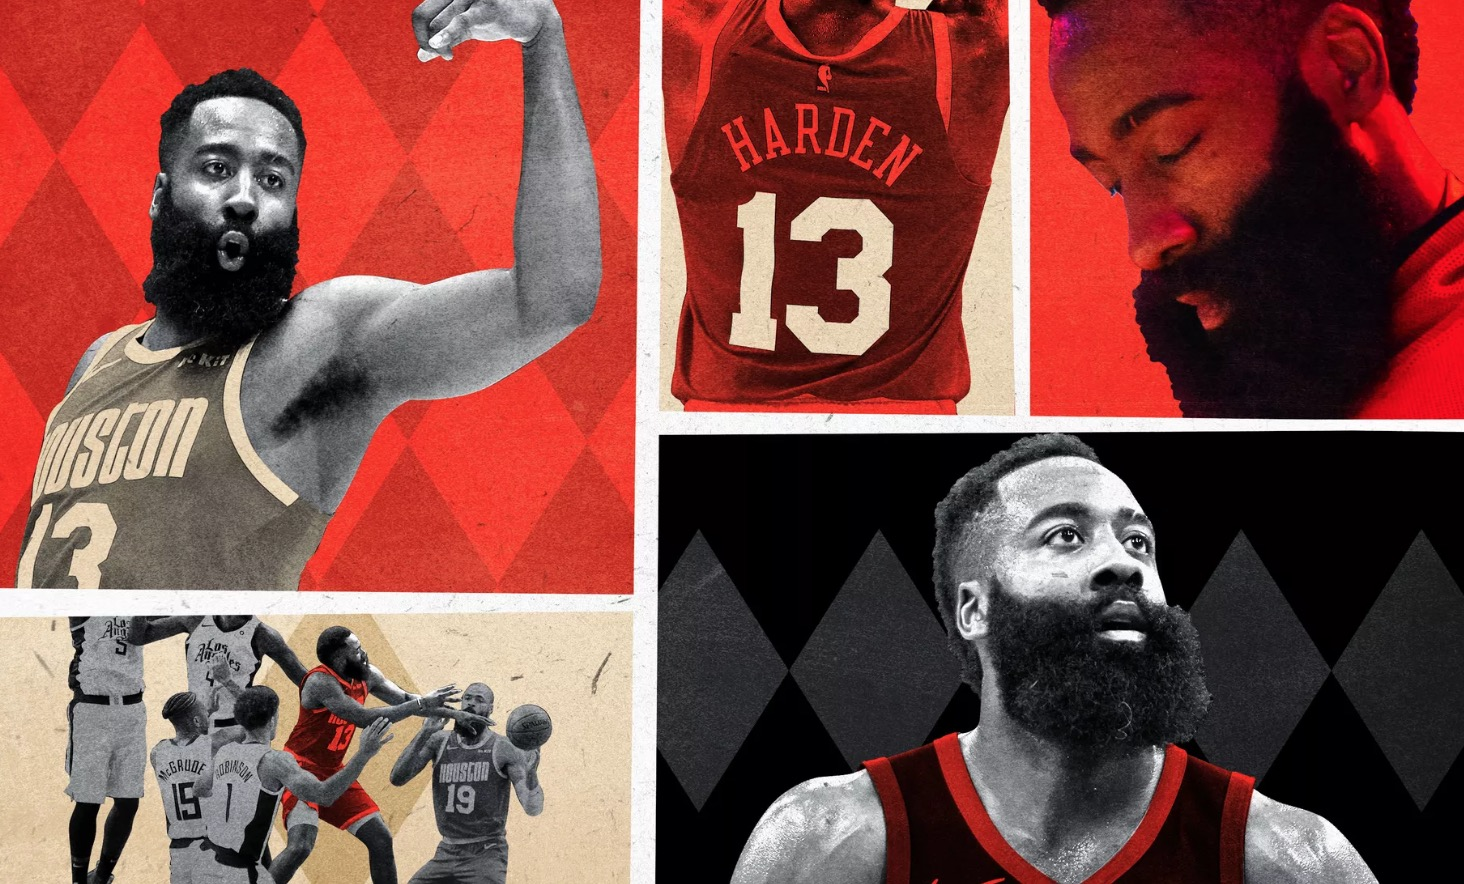 Making Sense Of James Harden, The NBA's Premier Heel